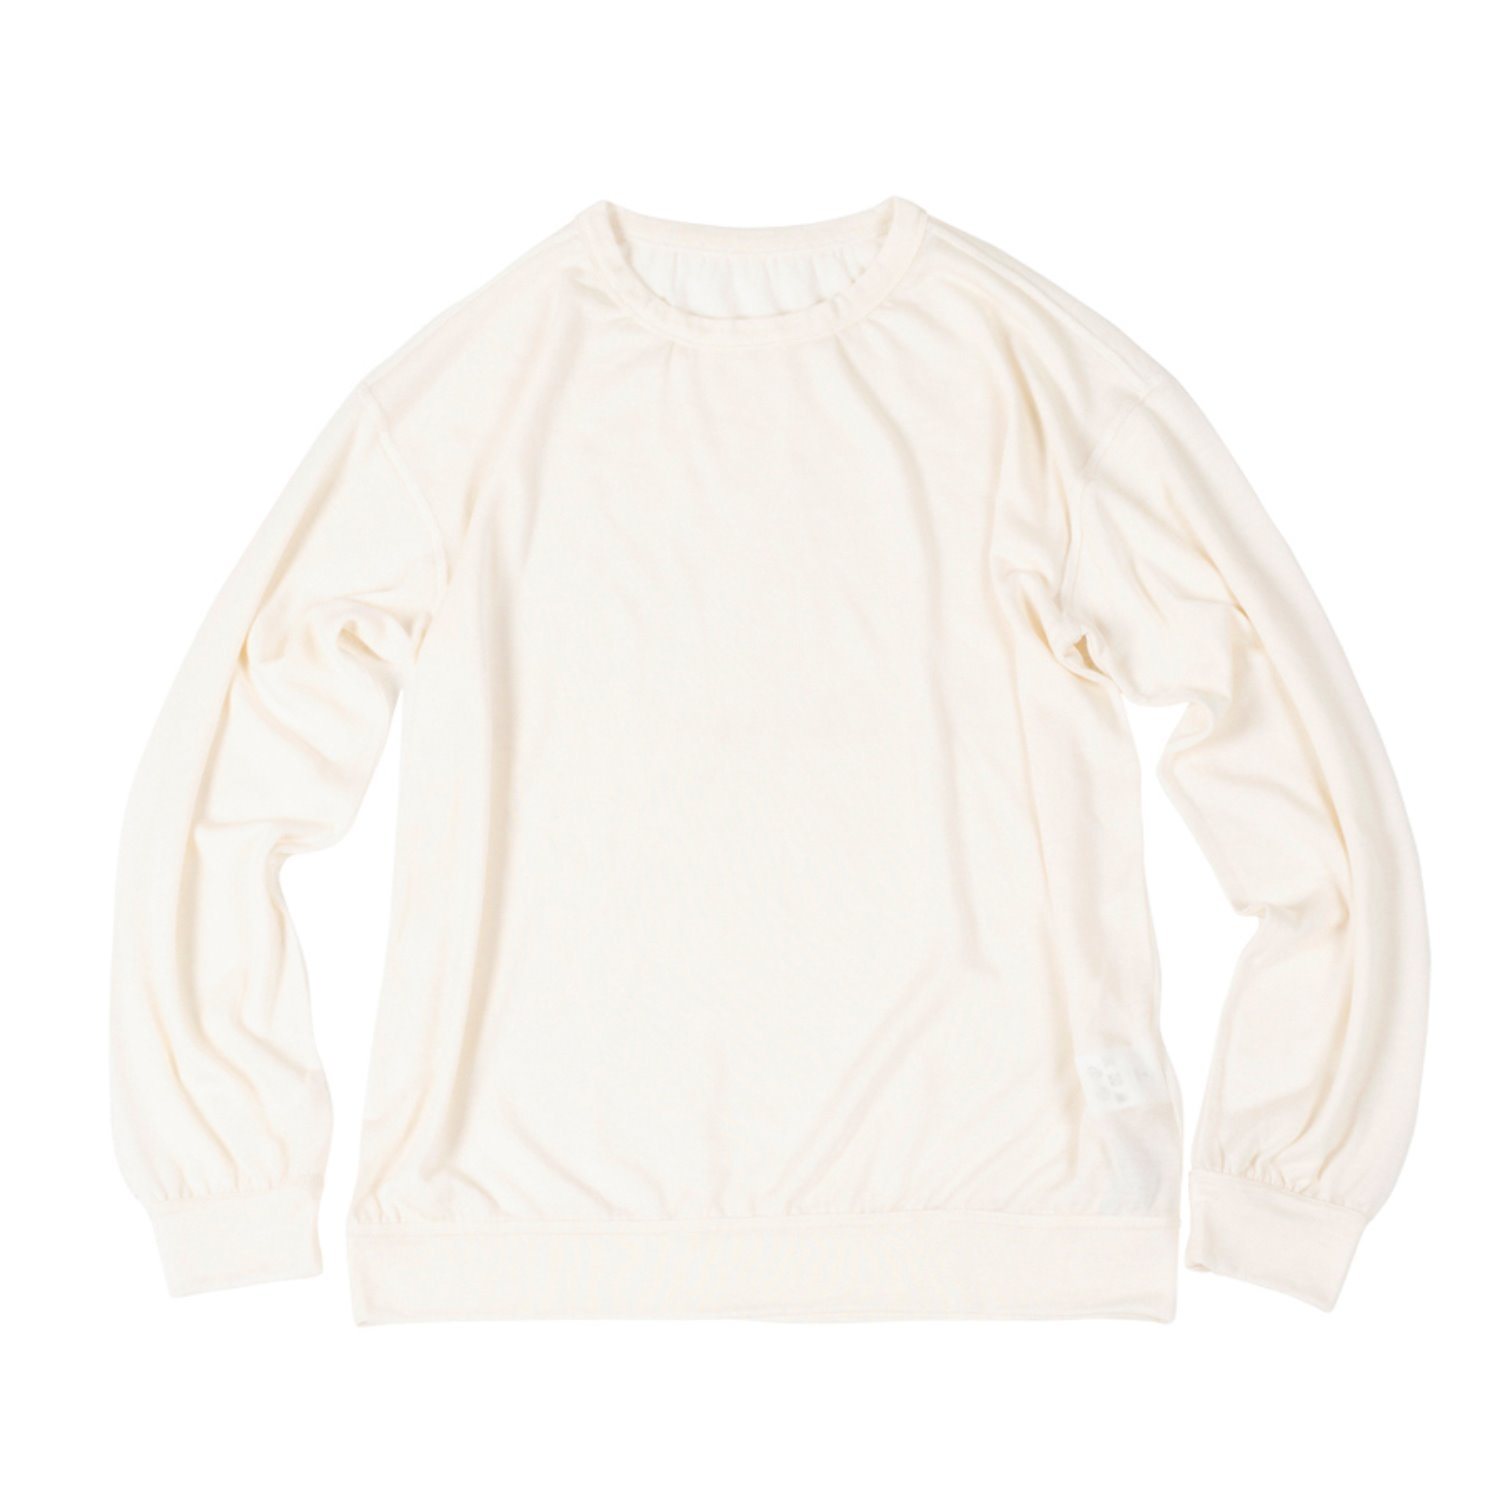 Corozo Makers Drape Knit Tee (off white)